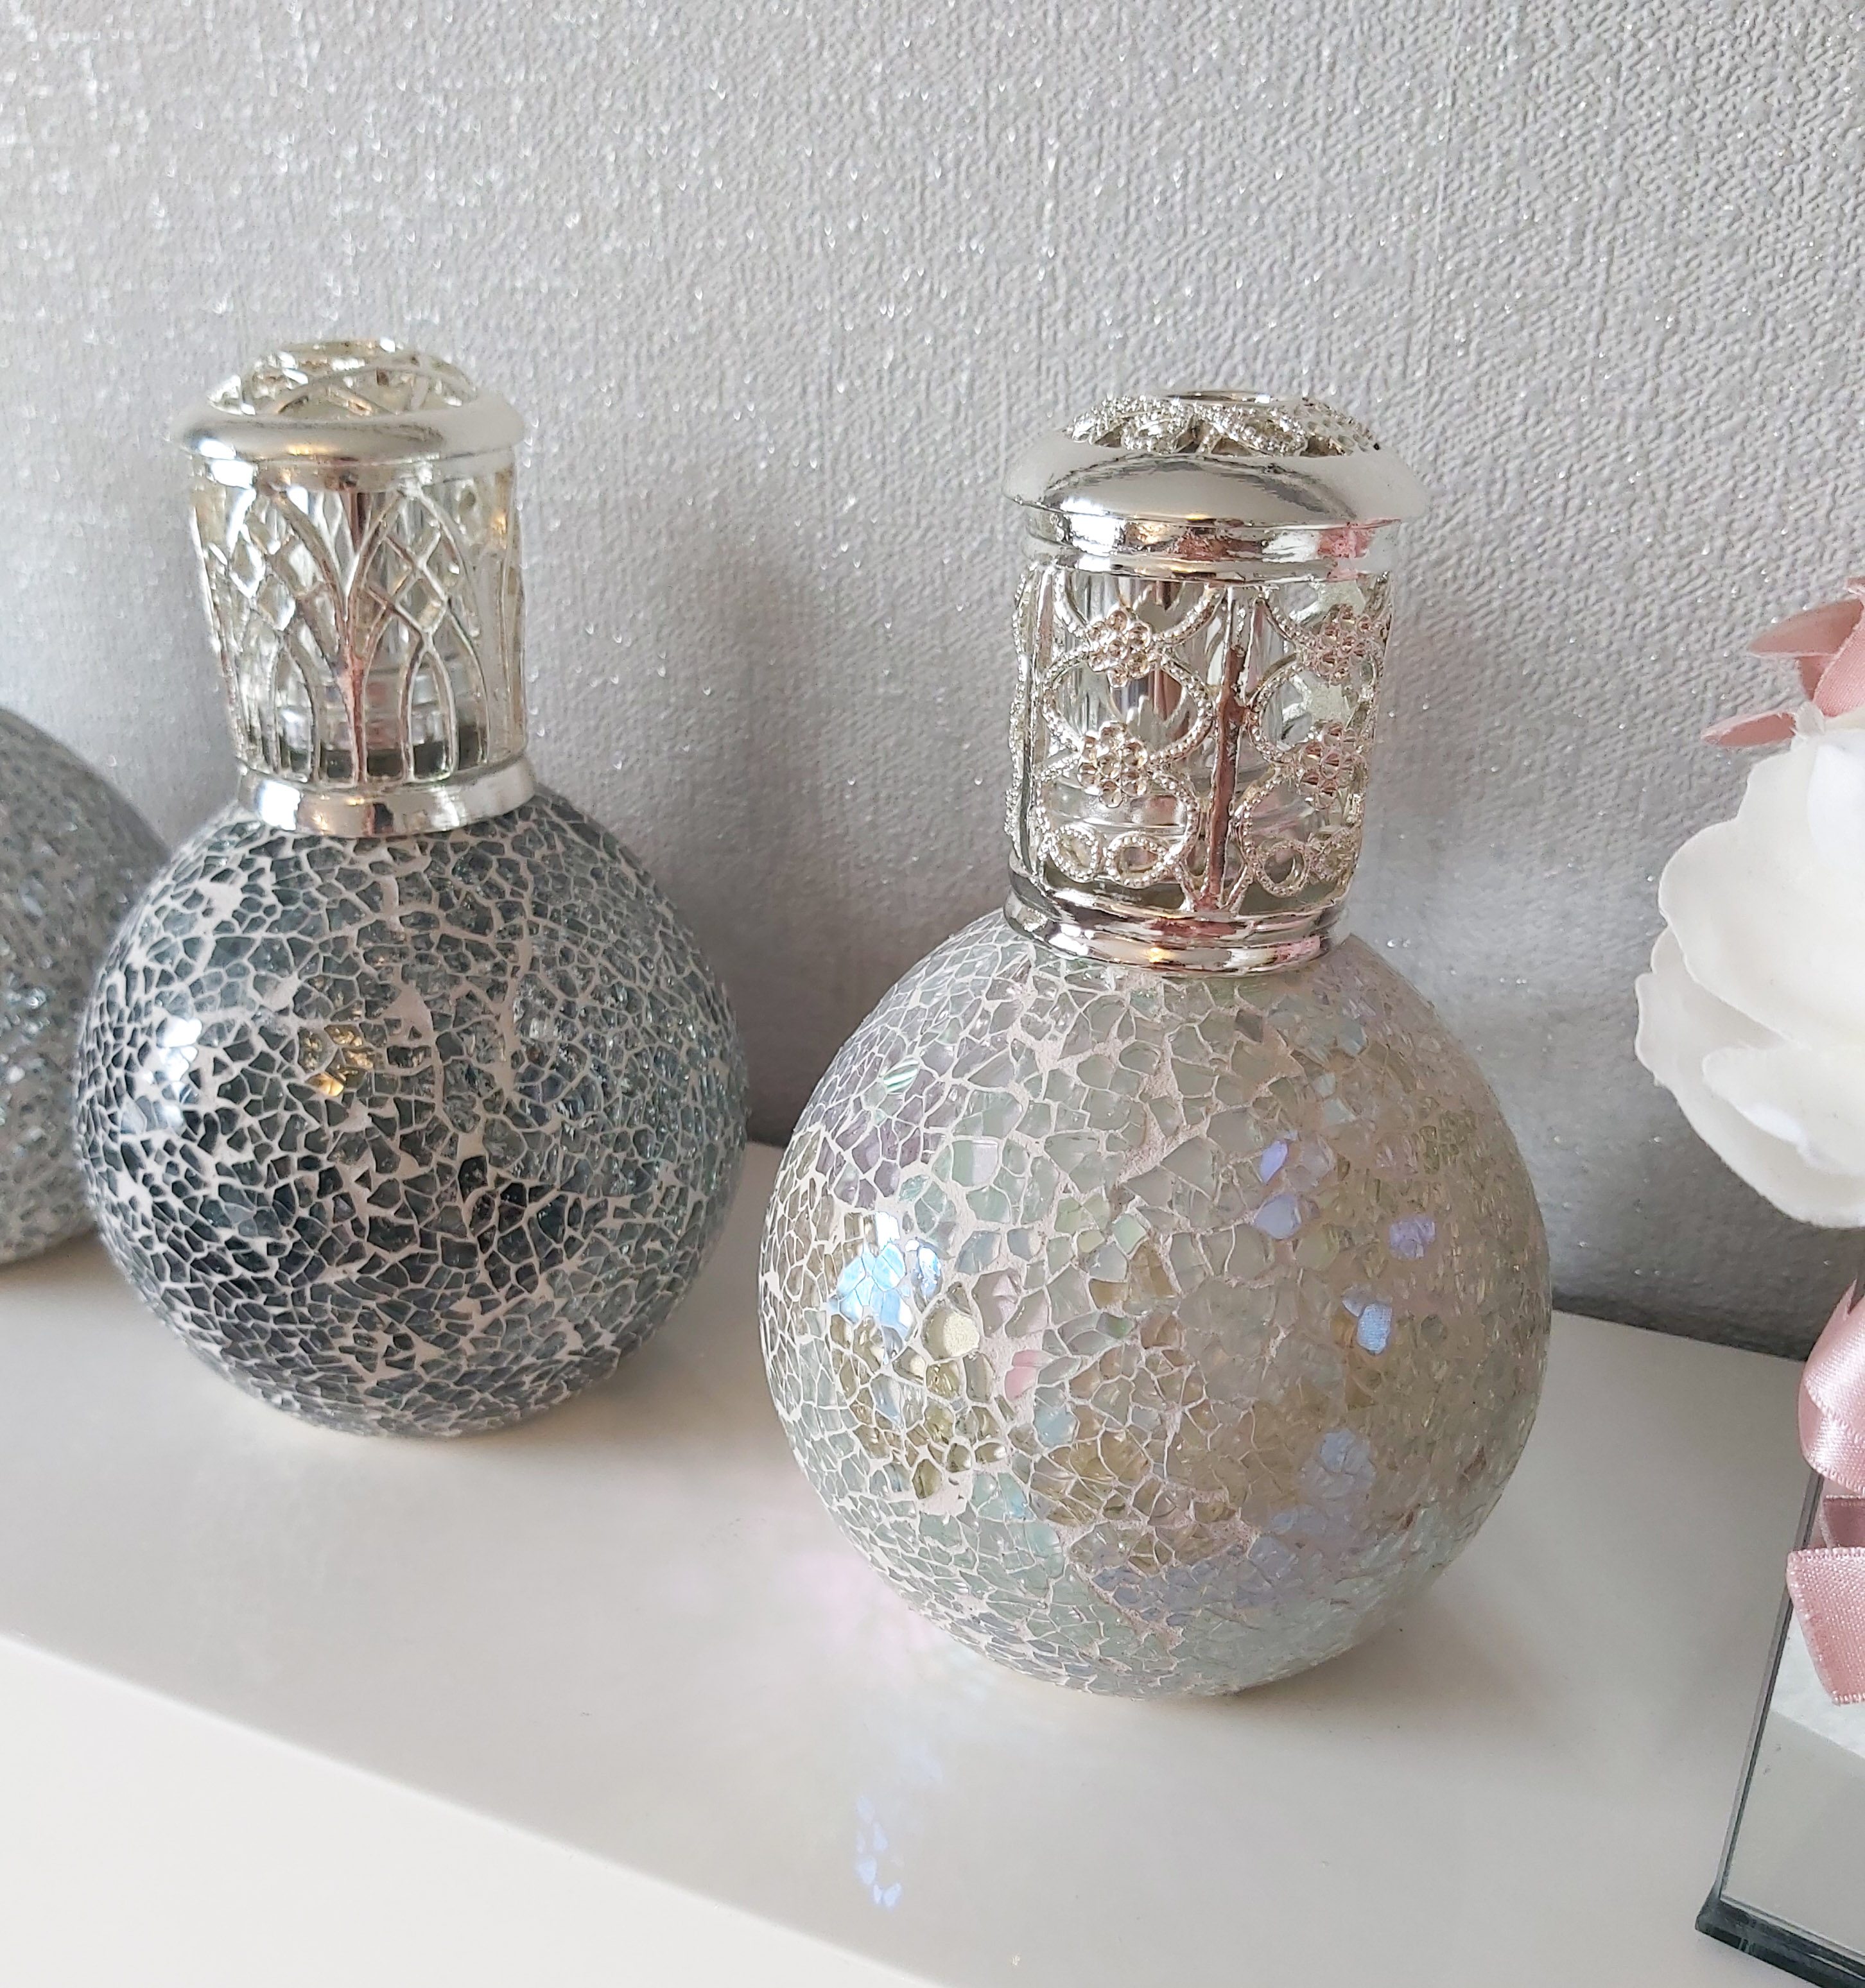 Fragrance Lamps